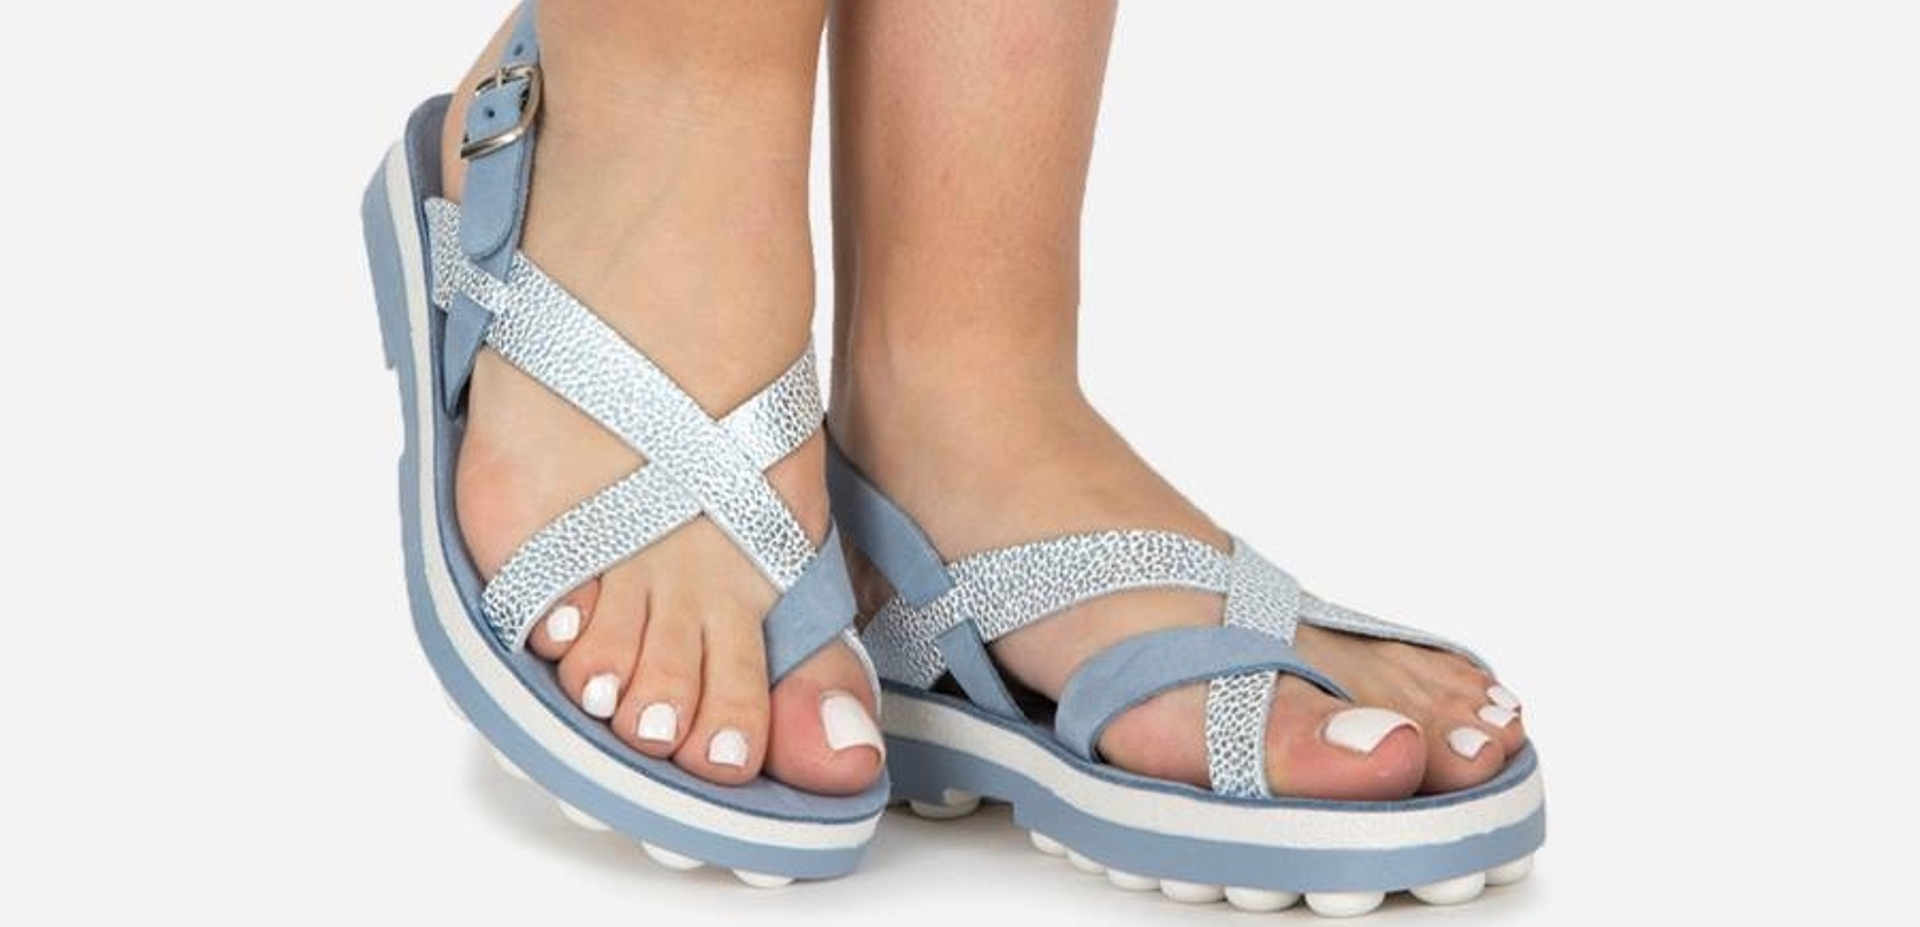 FANTASY SANDALS shoe